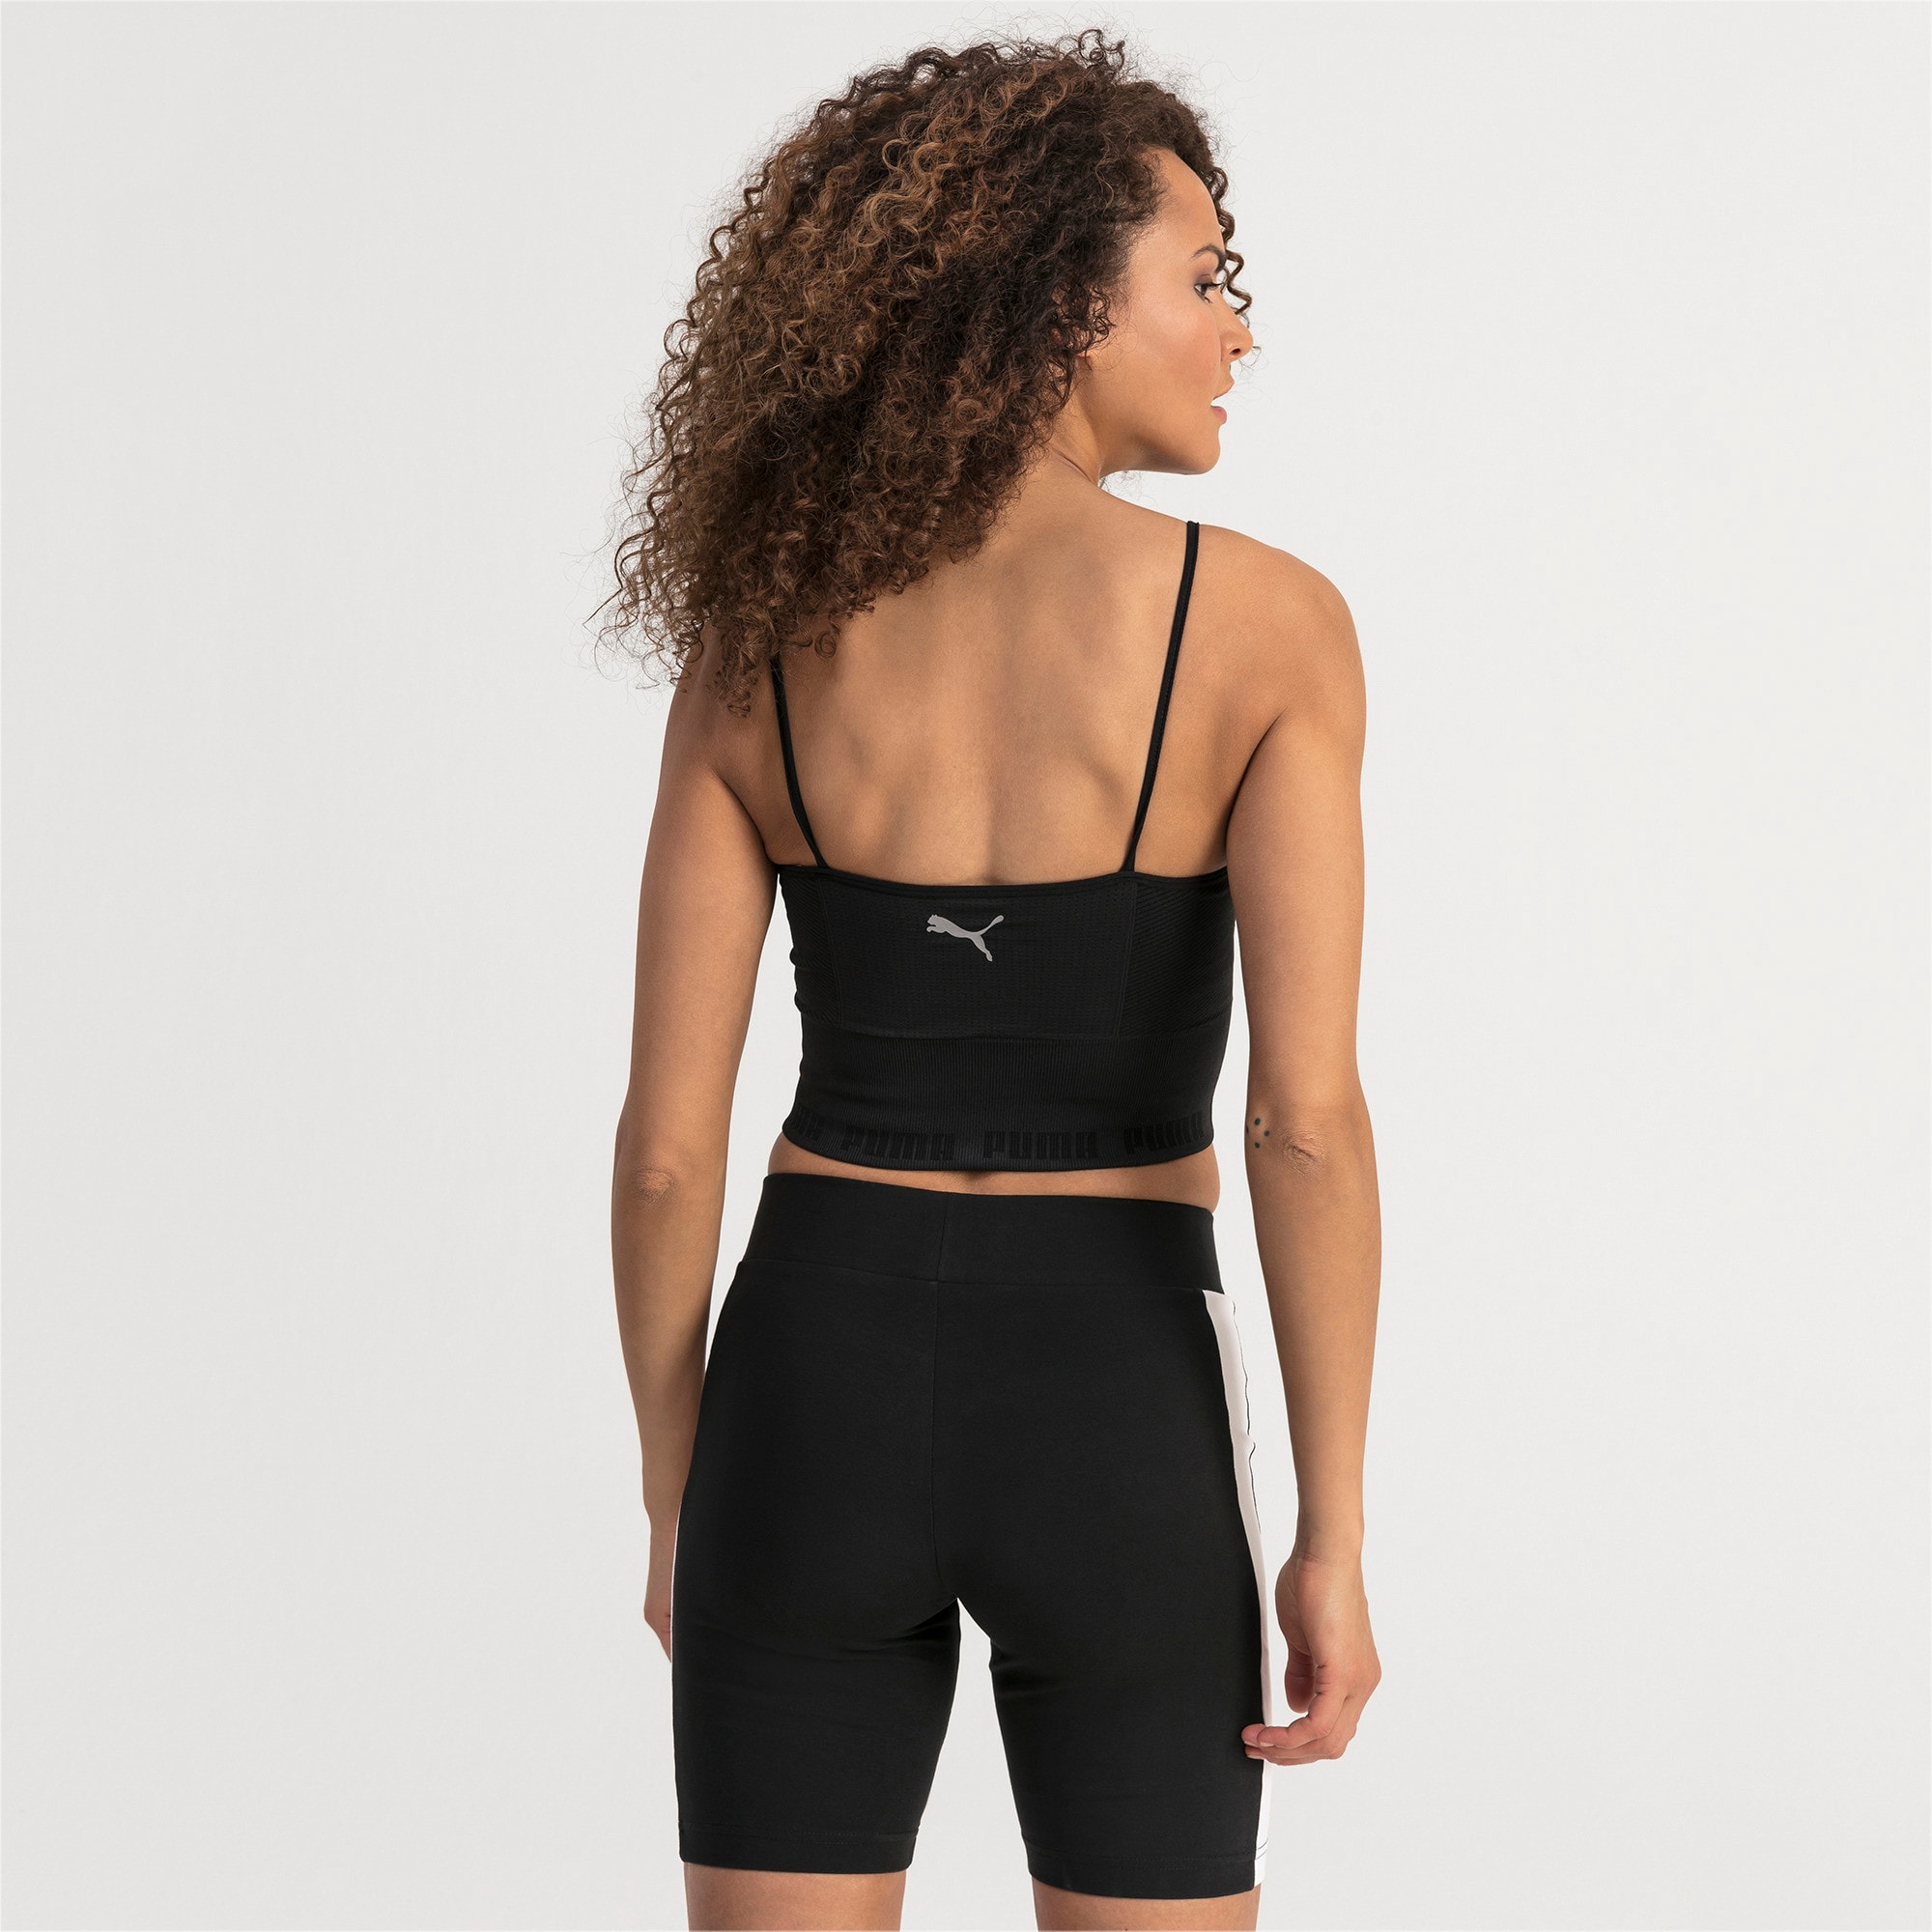 Thumbnail 2 of evoKNIT Seamless Women's Crop Top, Puma Black, medium